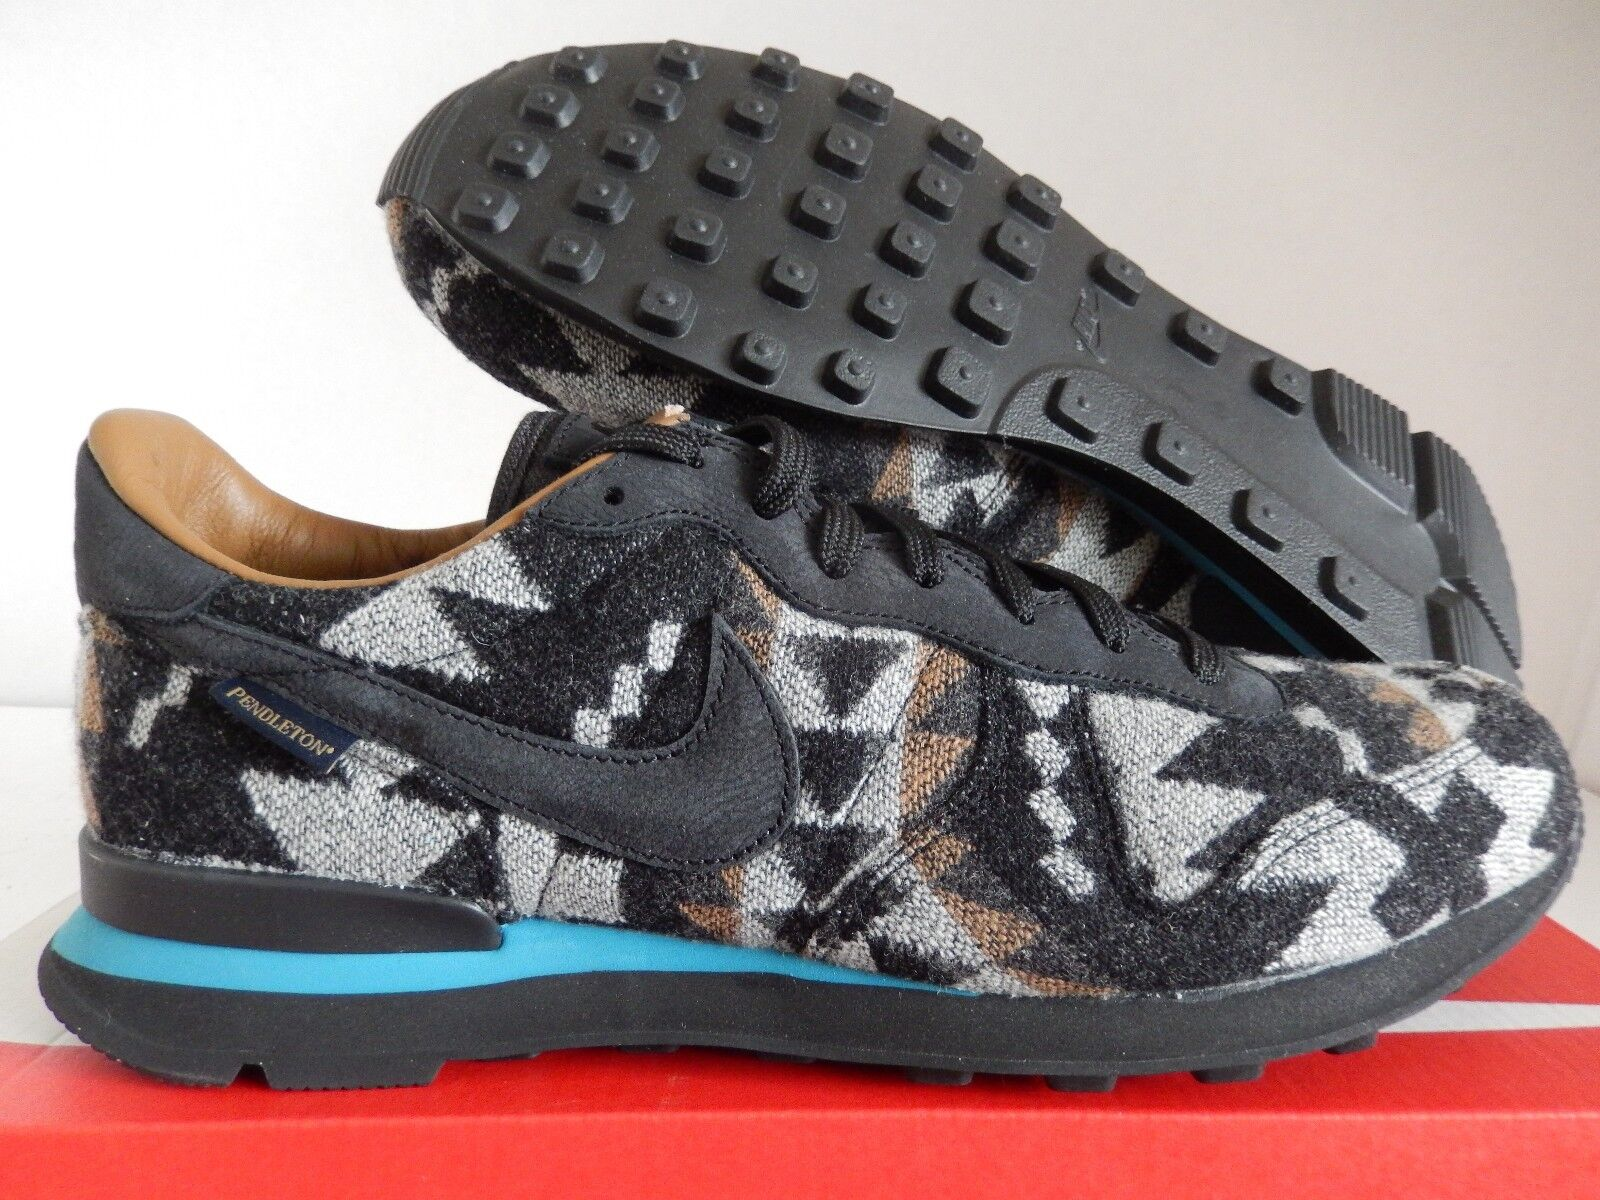 NIKE INTERNATIONALIST PND QS PENDLETON BLACK-STRATUS BLUE SZ 10 [828042-004]